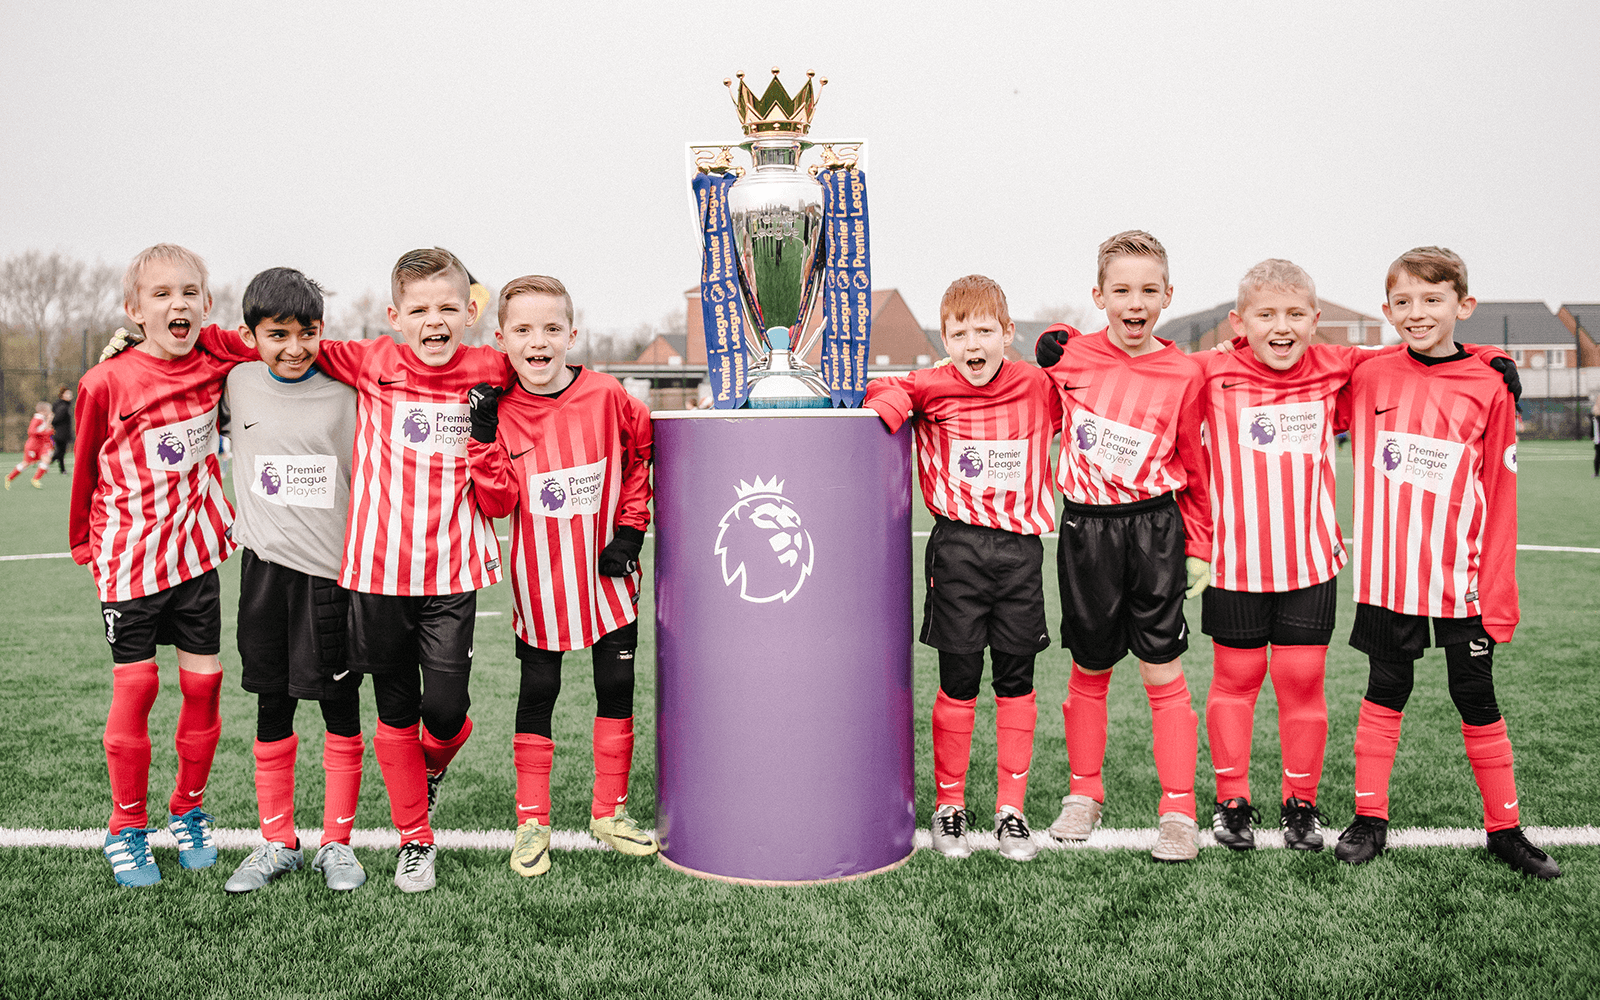 Pupils celebrating beside the Premier League trophy.